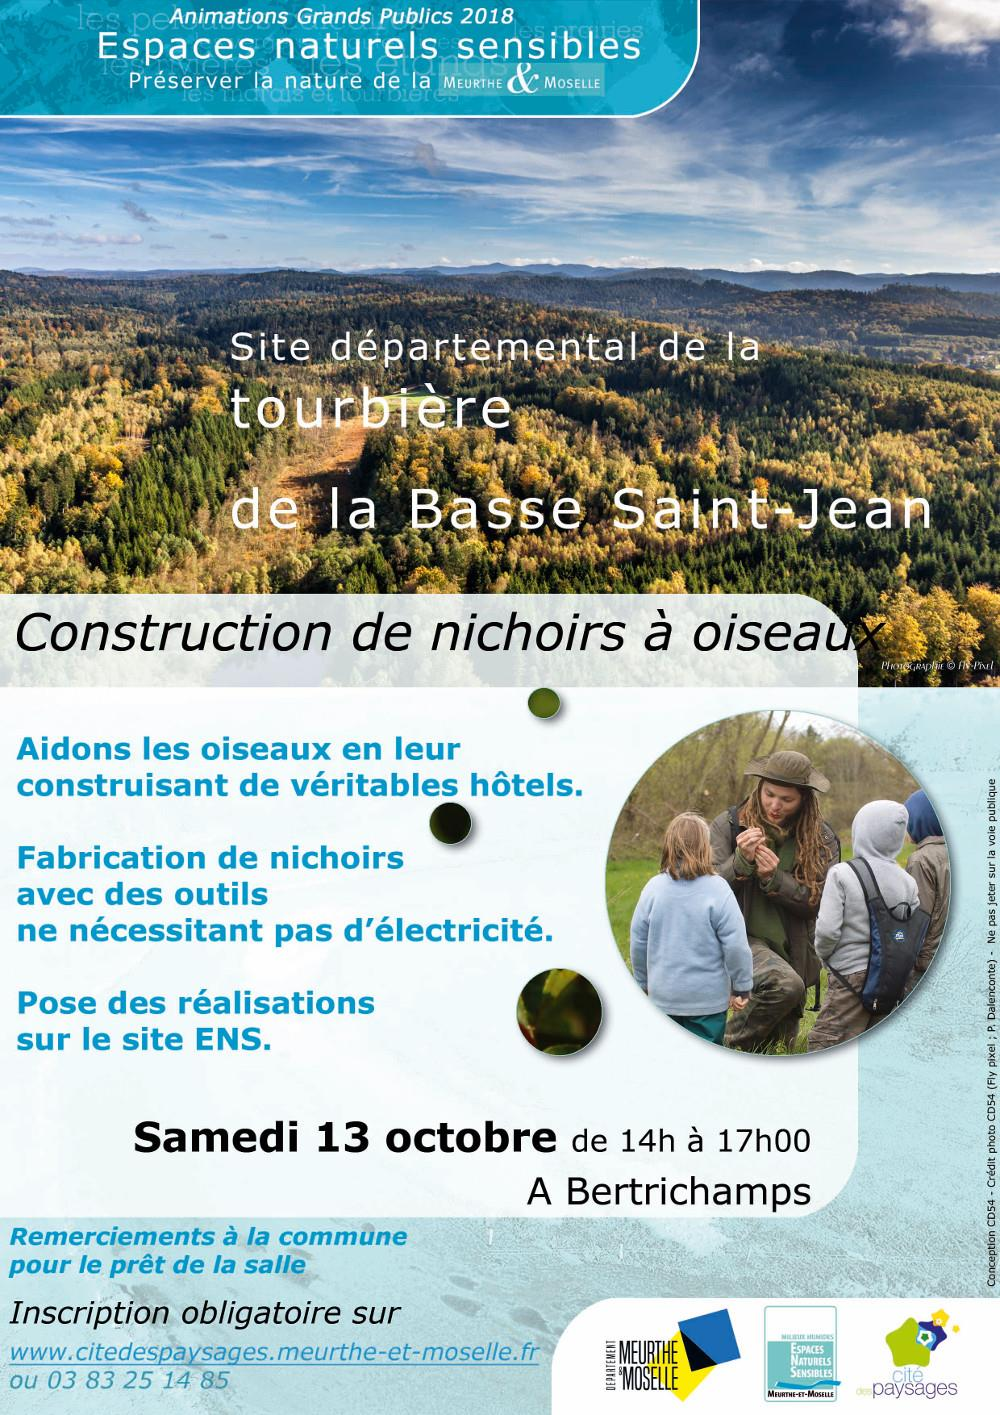 INITIATION A L'ANIMATION NATURE